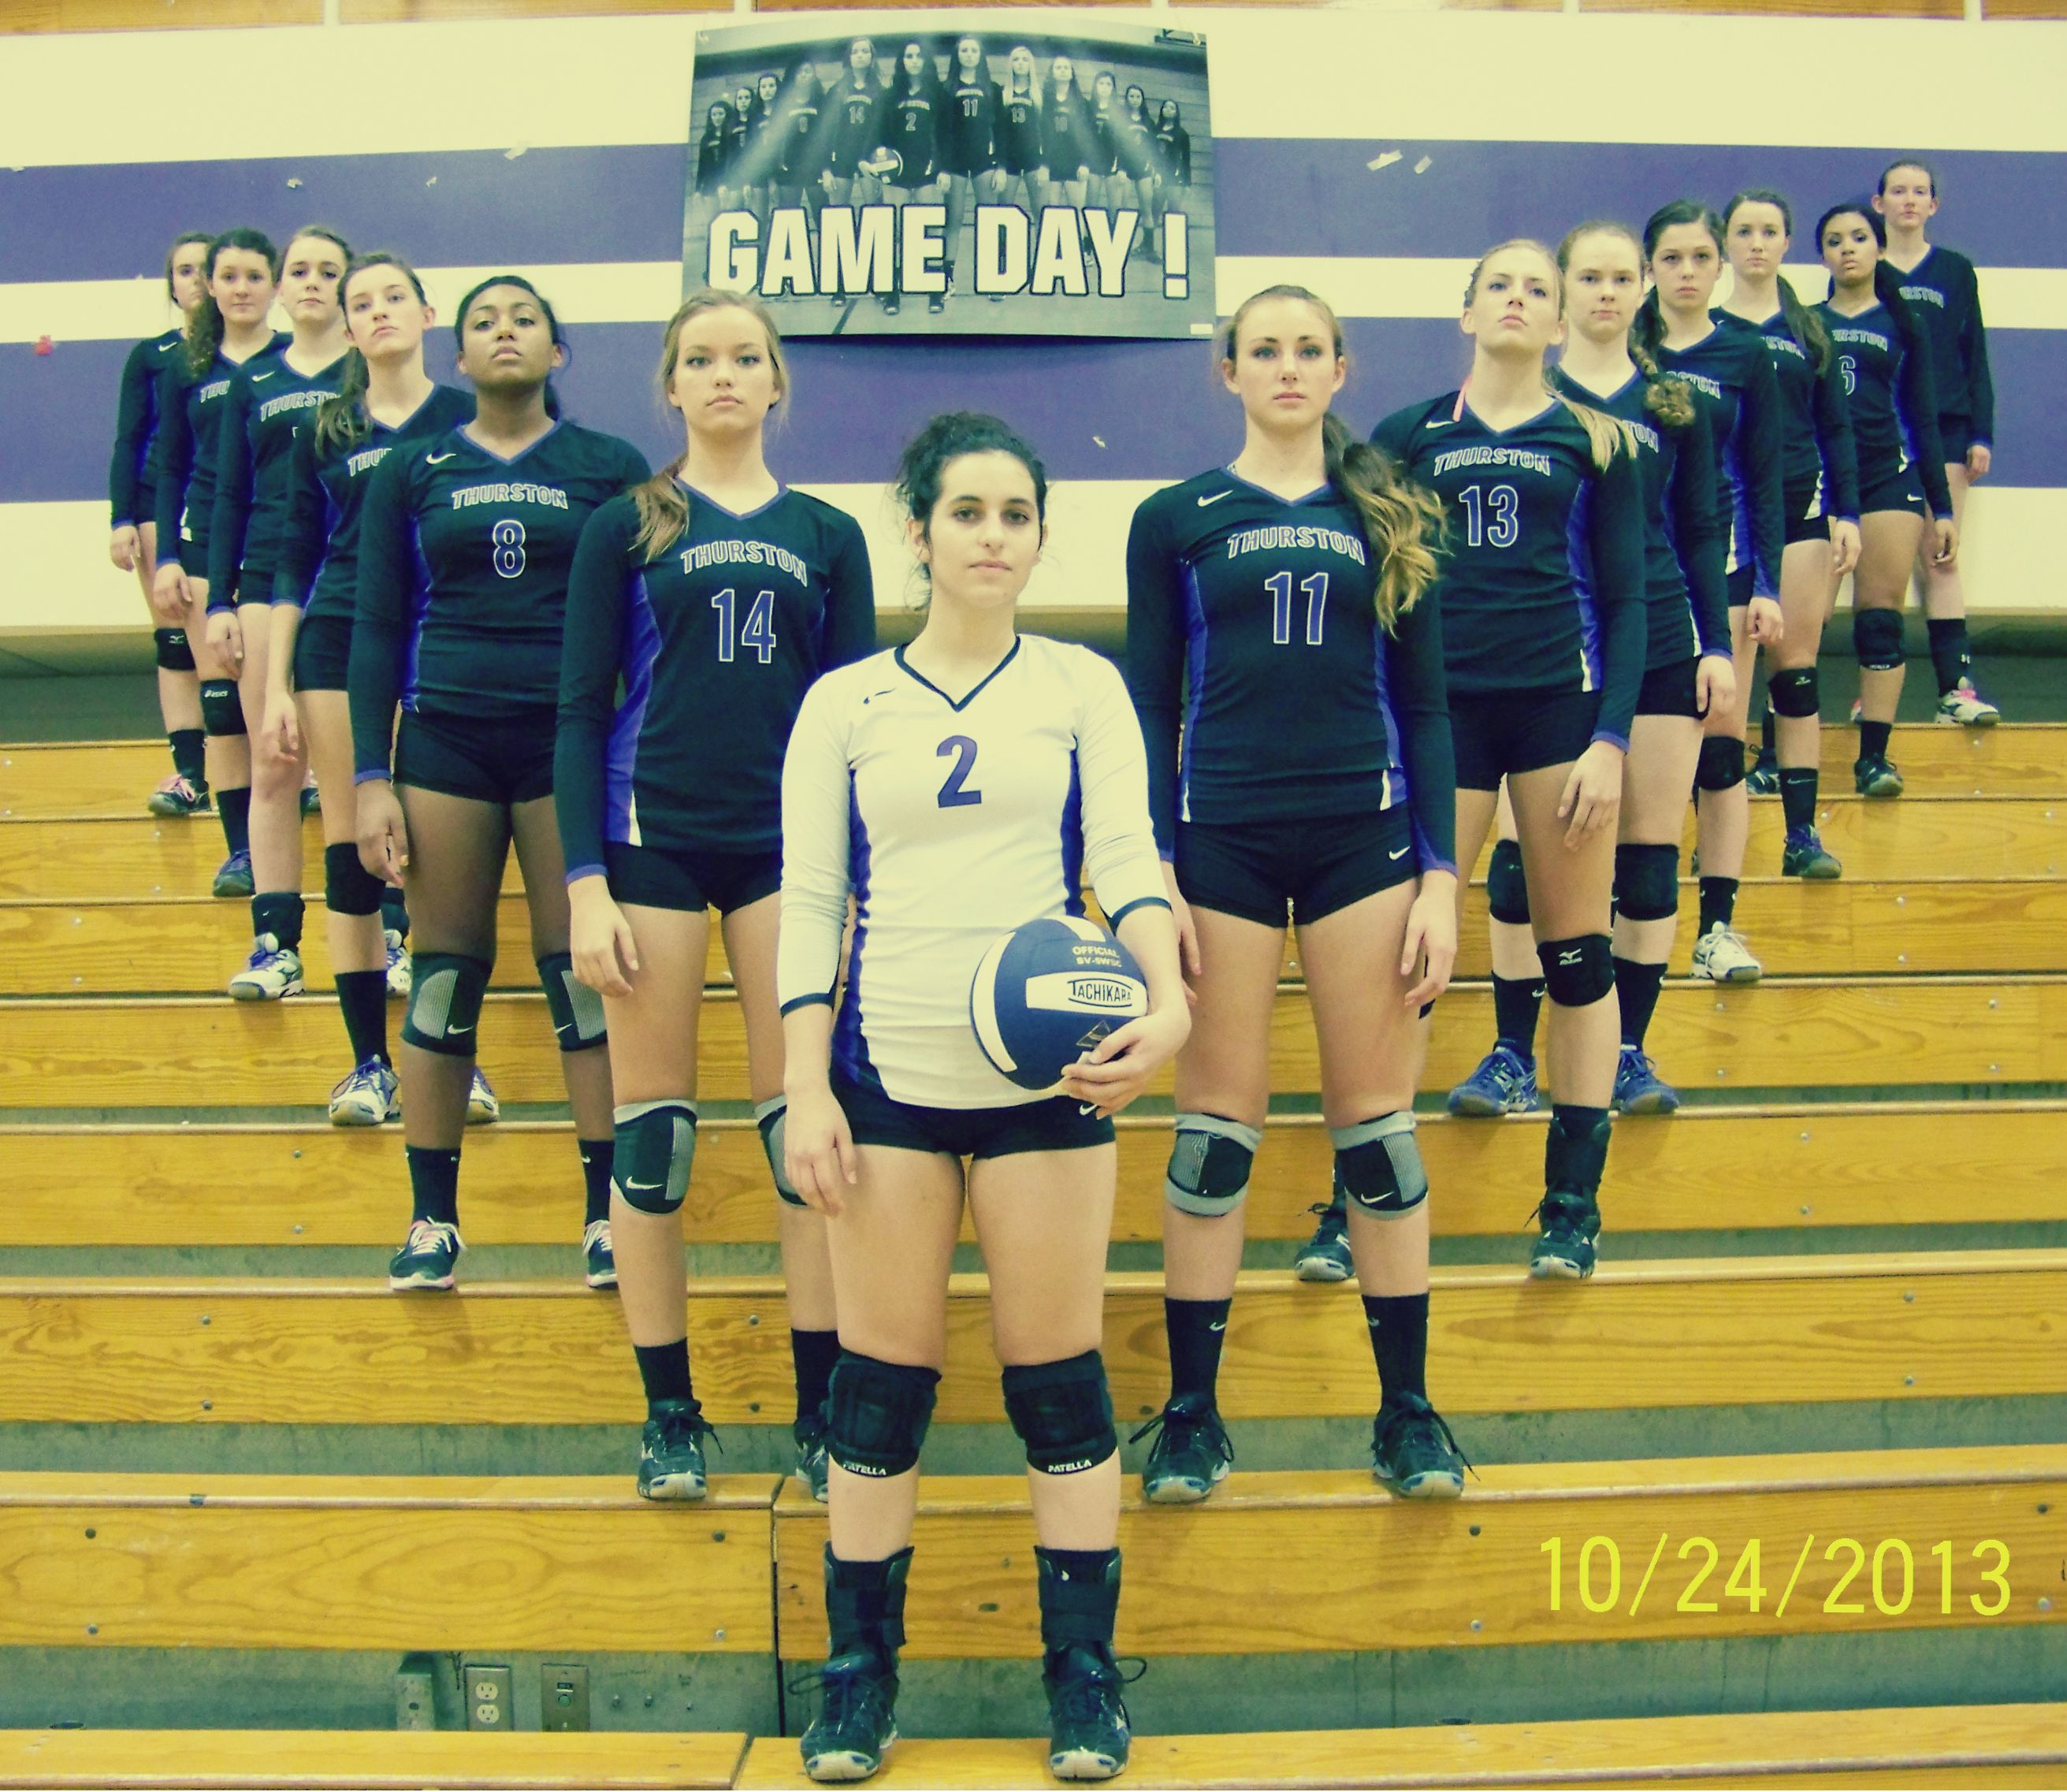 Boom Game Day Nths Volleyball Team Volleyball Team Volleyball Sports